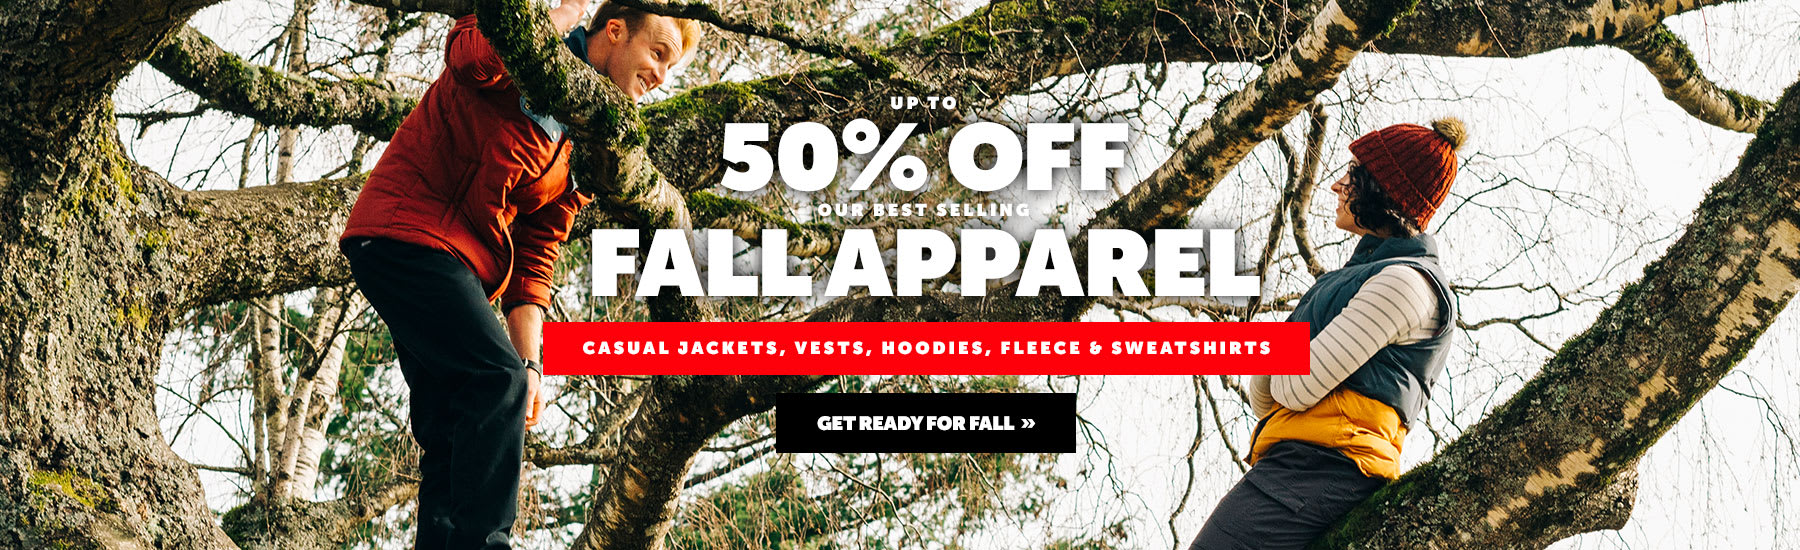 Shop Fall Apparel